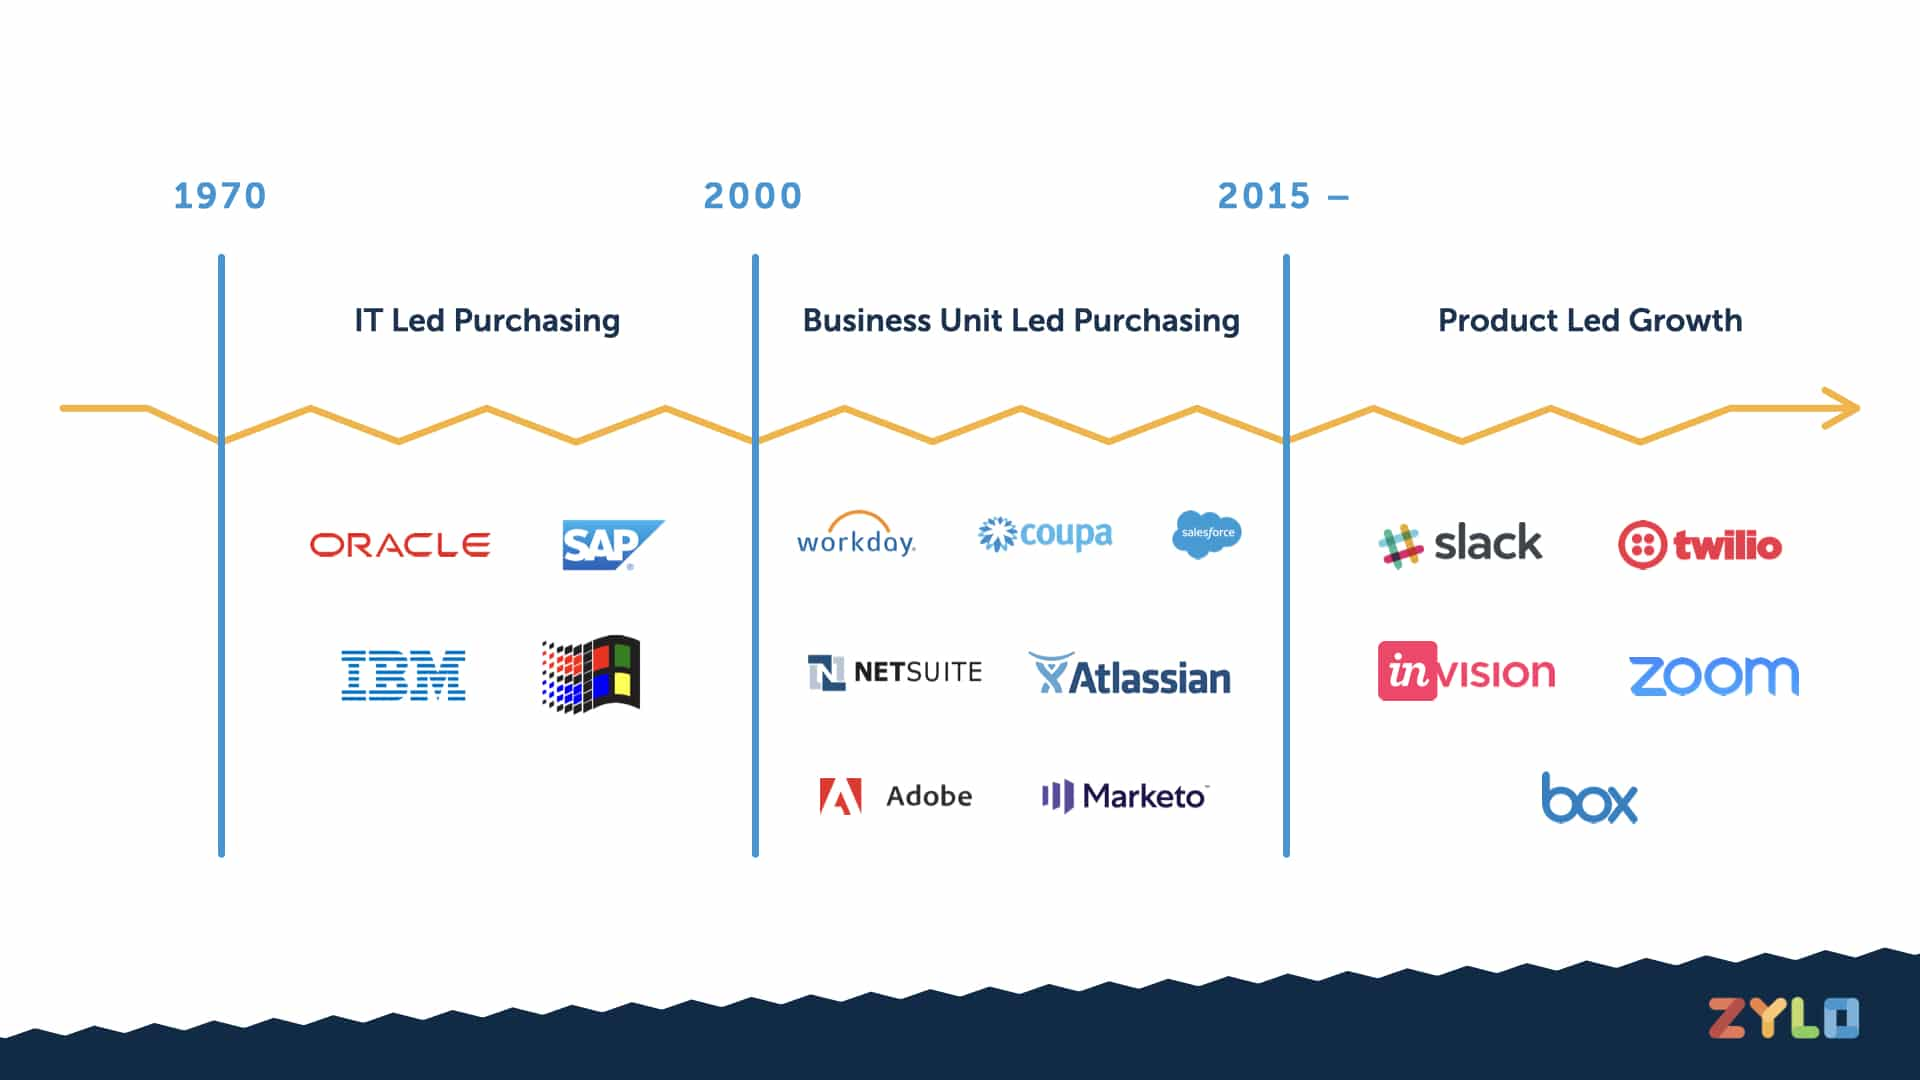 Software purchasing has increasingly has evolved from IT led to end-user led in the era of product-led growth.